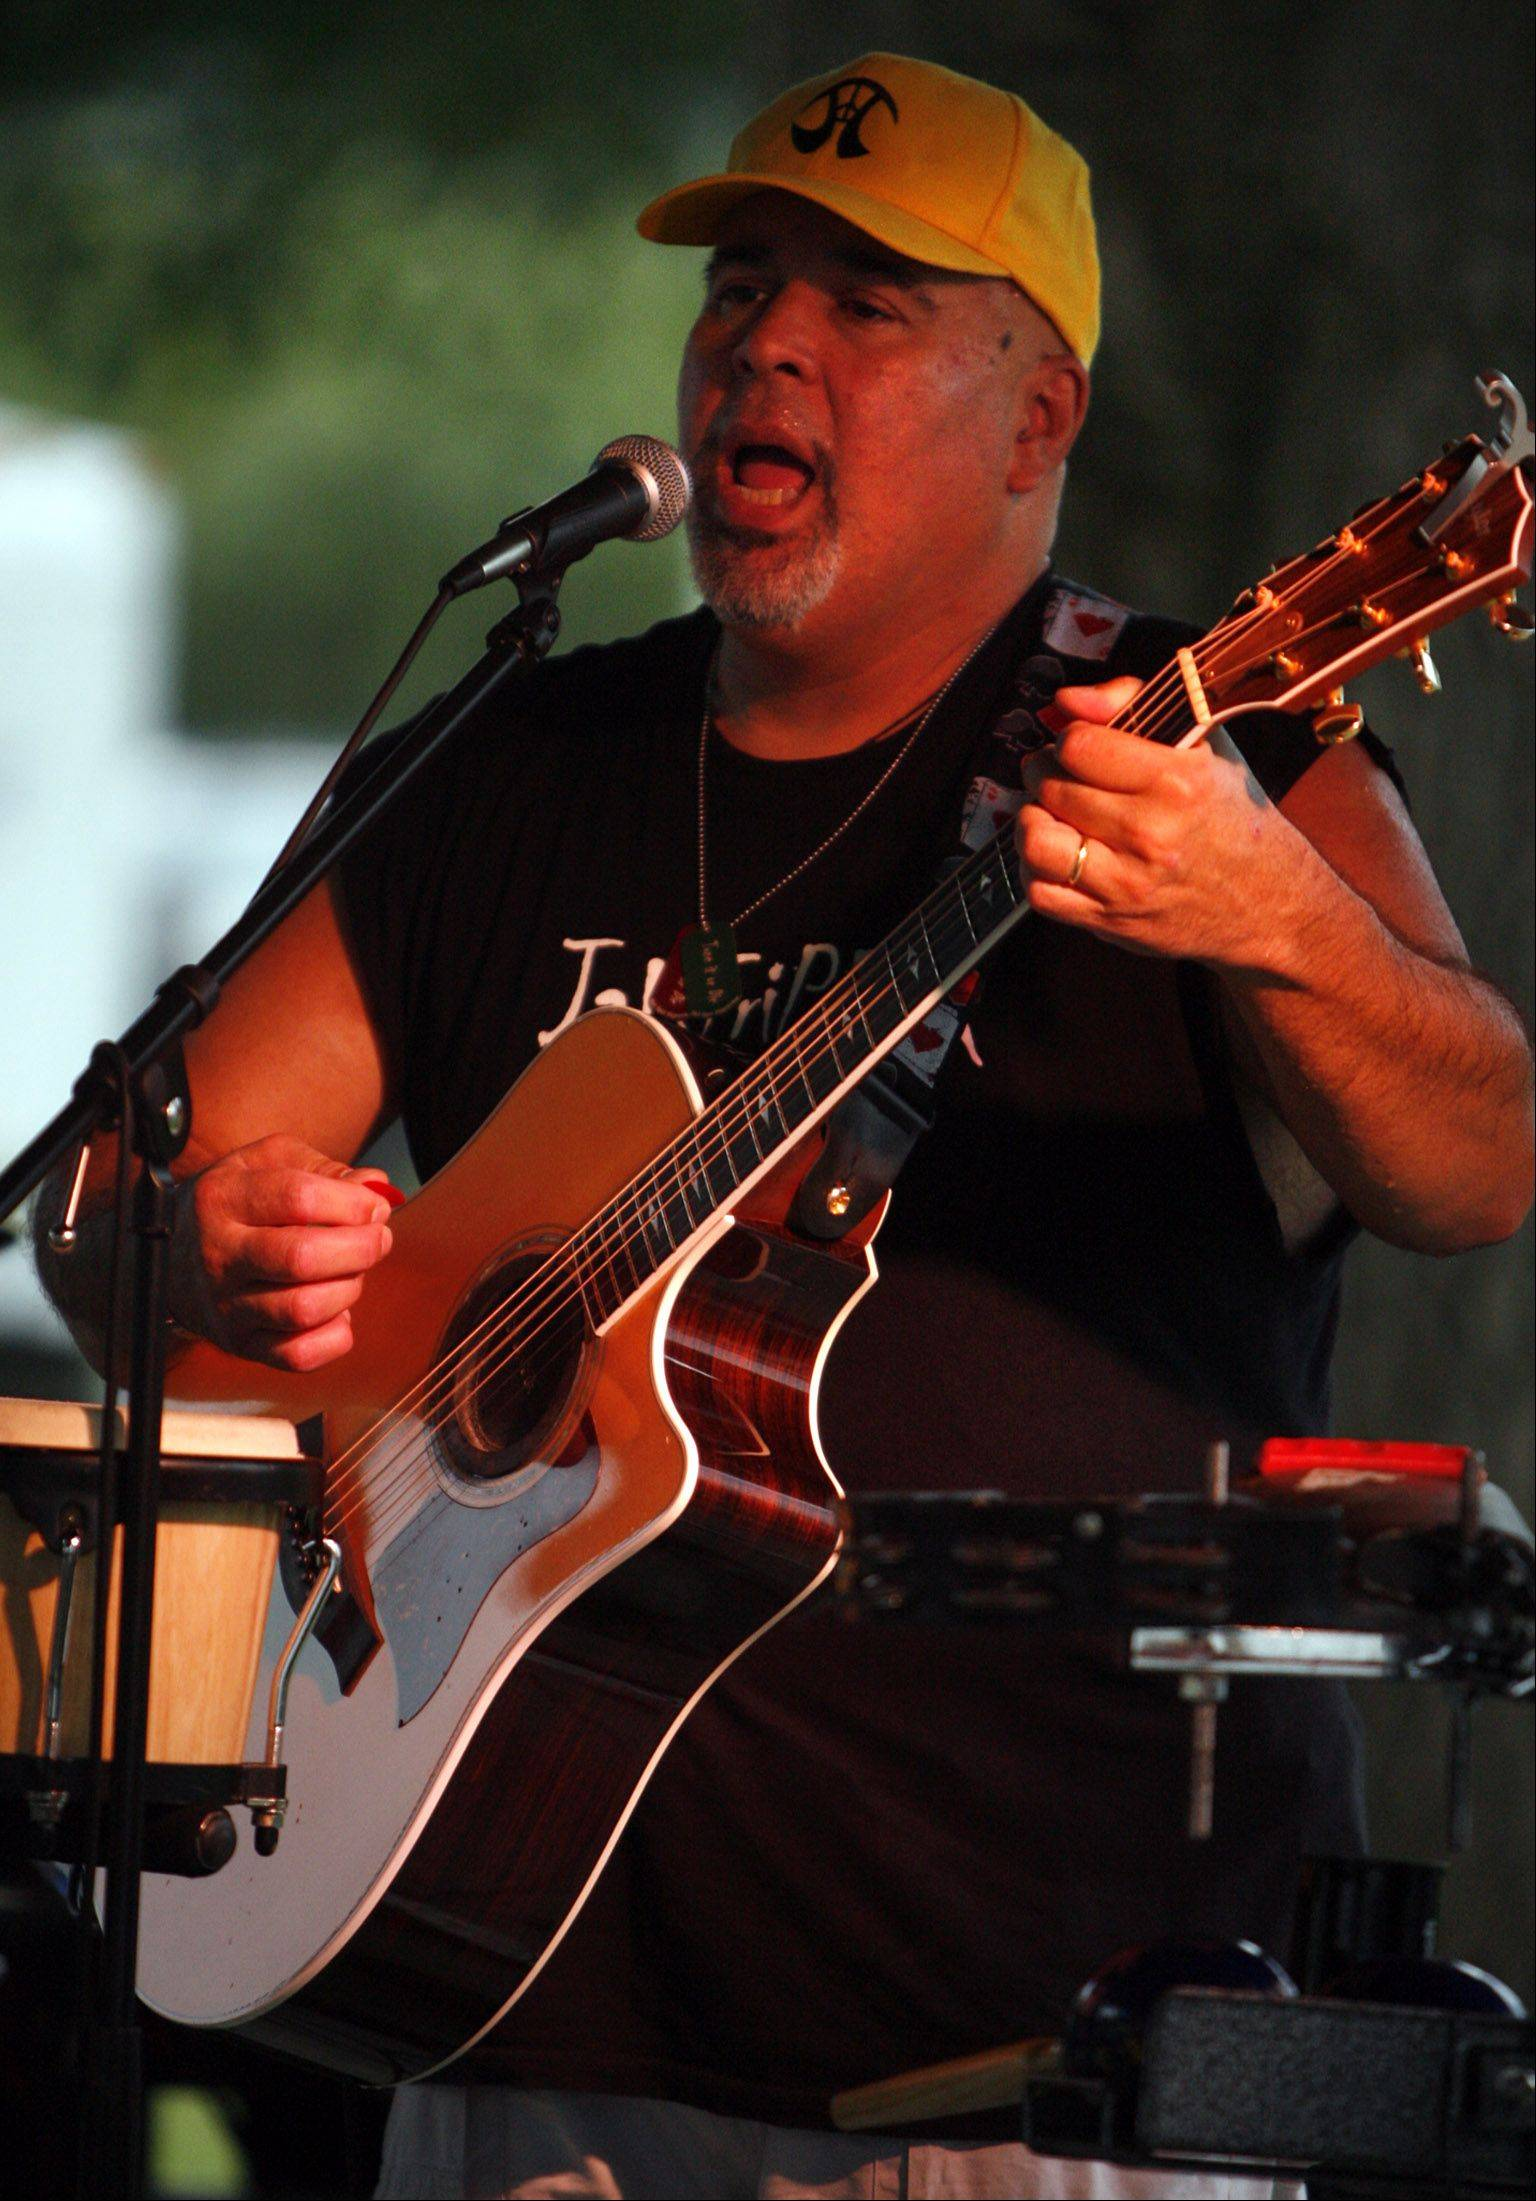 Roy Silva with Jaktripper Band plays at the first day of the Lakemoor Fest in 2010. The band and other favorites are back this weekend Aug. 10-12 on Lily Lake in Lakemoor.